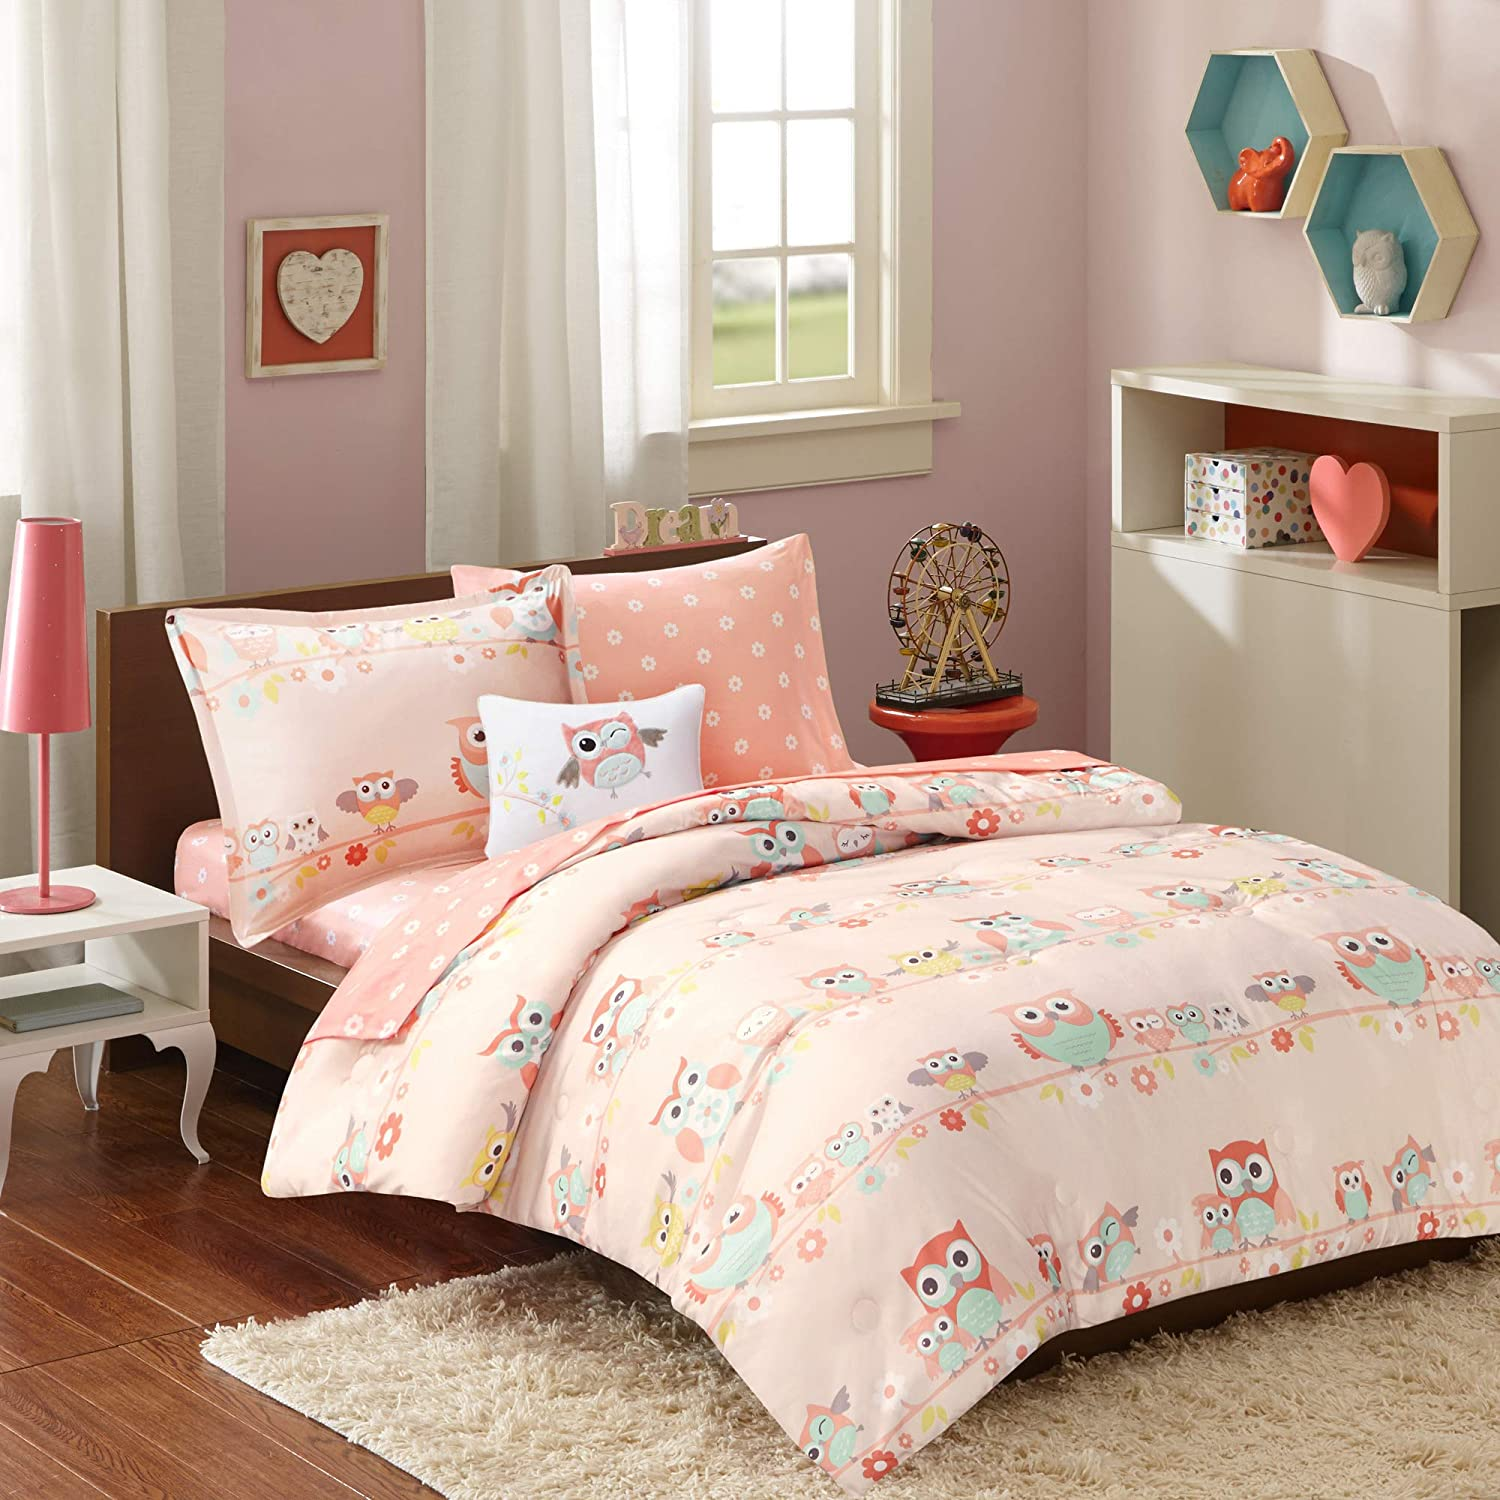 Mi Zone Kids Wise Wendy Comforter Reversible Bag Cute Owl Flower Floral Botanical Happy Printed Ultra-Soft Overfilled Down Alternative Hypoallergenic All Season Bedding-Set, Full, Blush